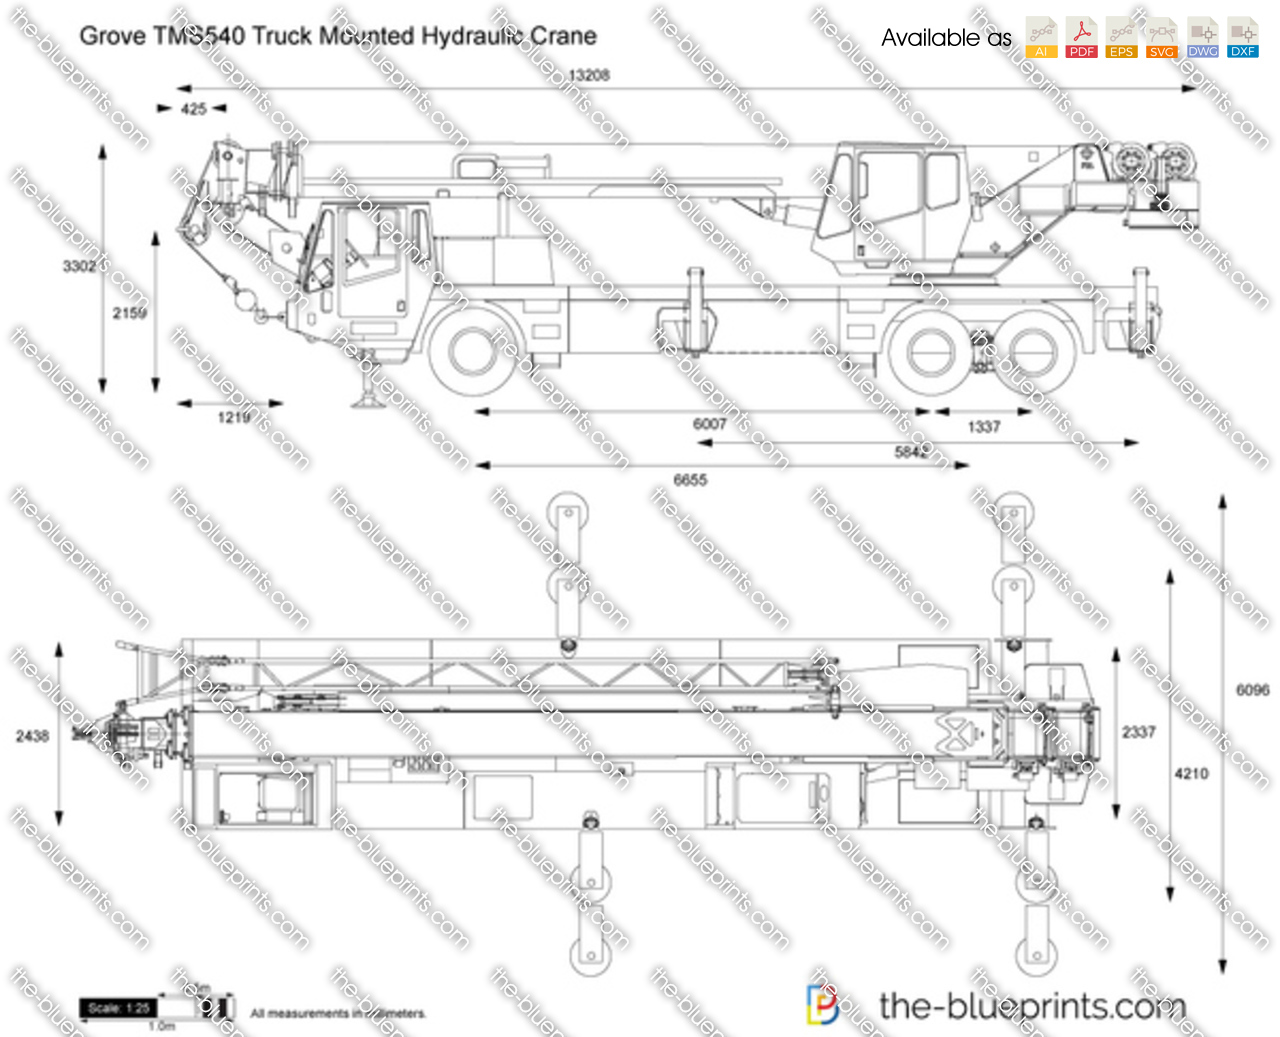 Grove TMS540 Truck Mounted Hydraulic Crane